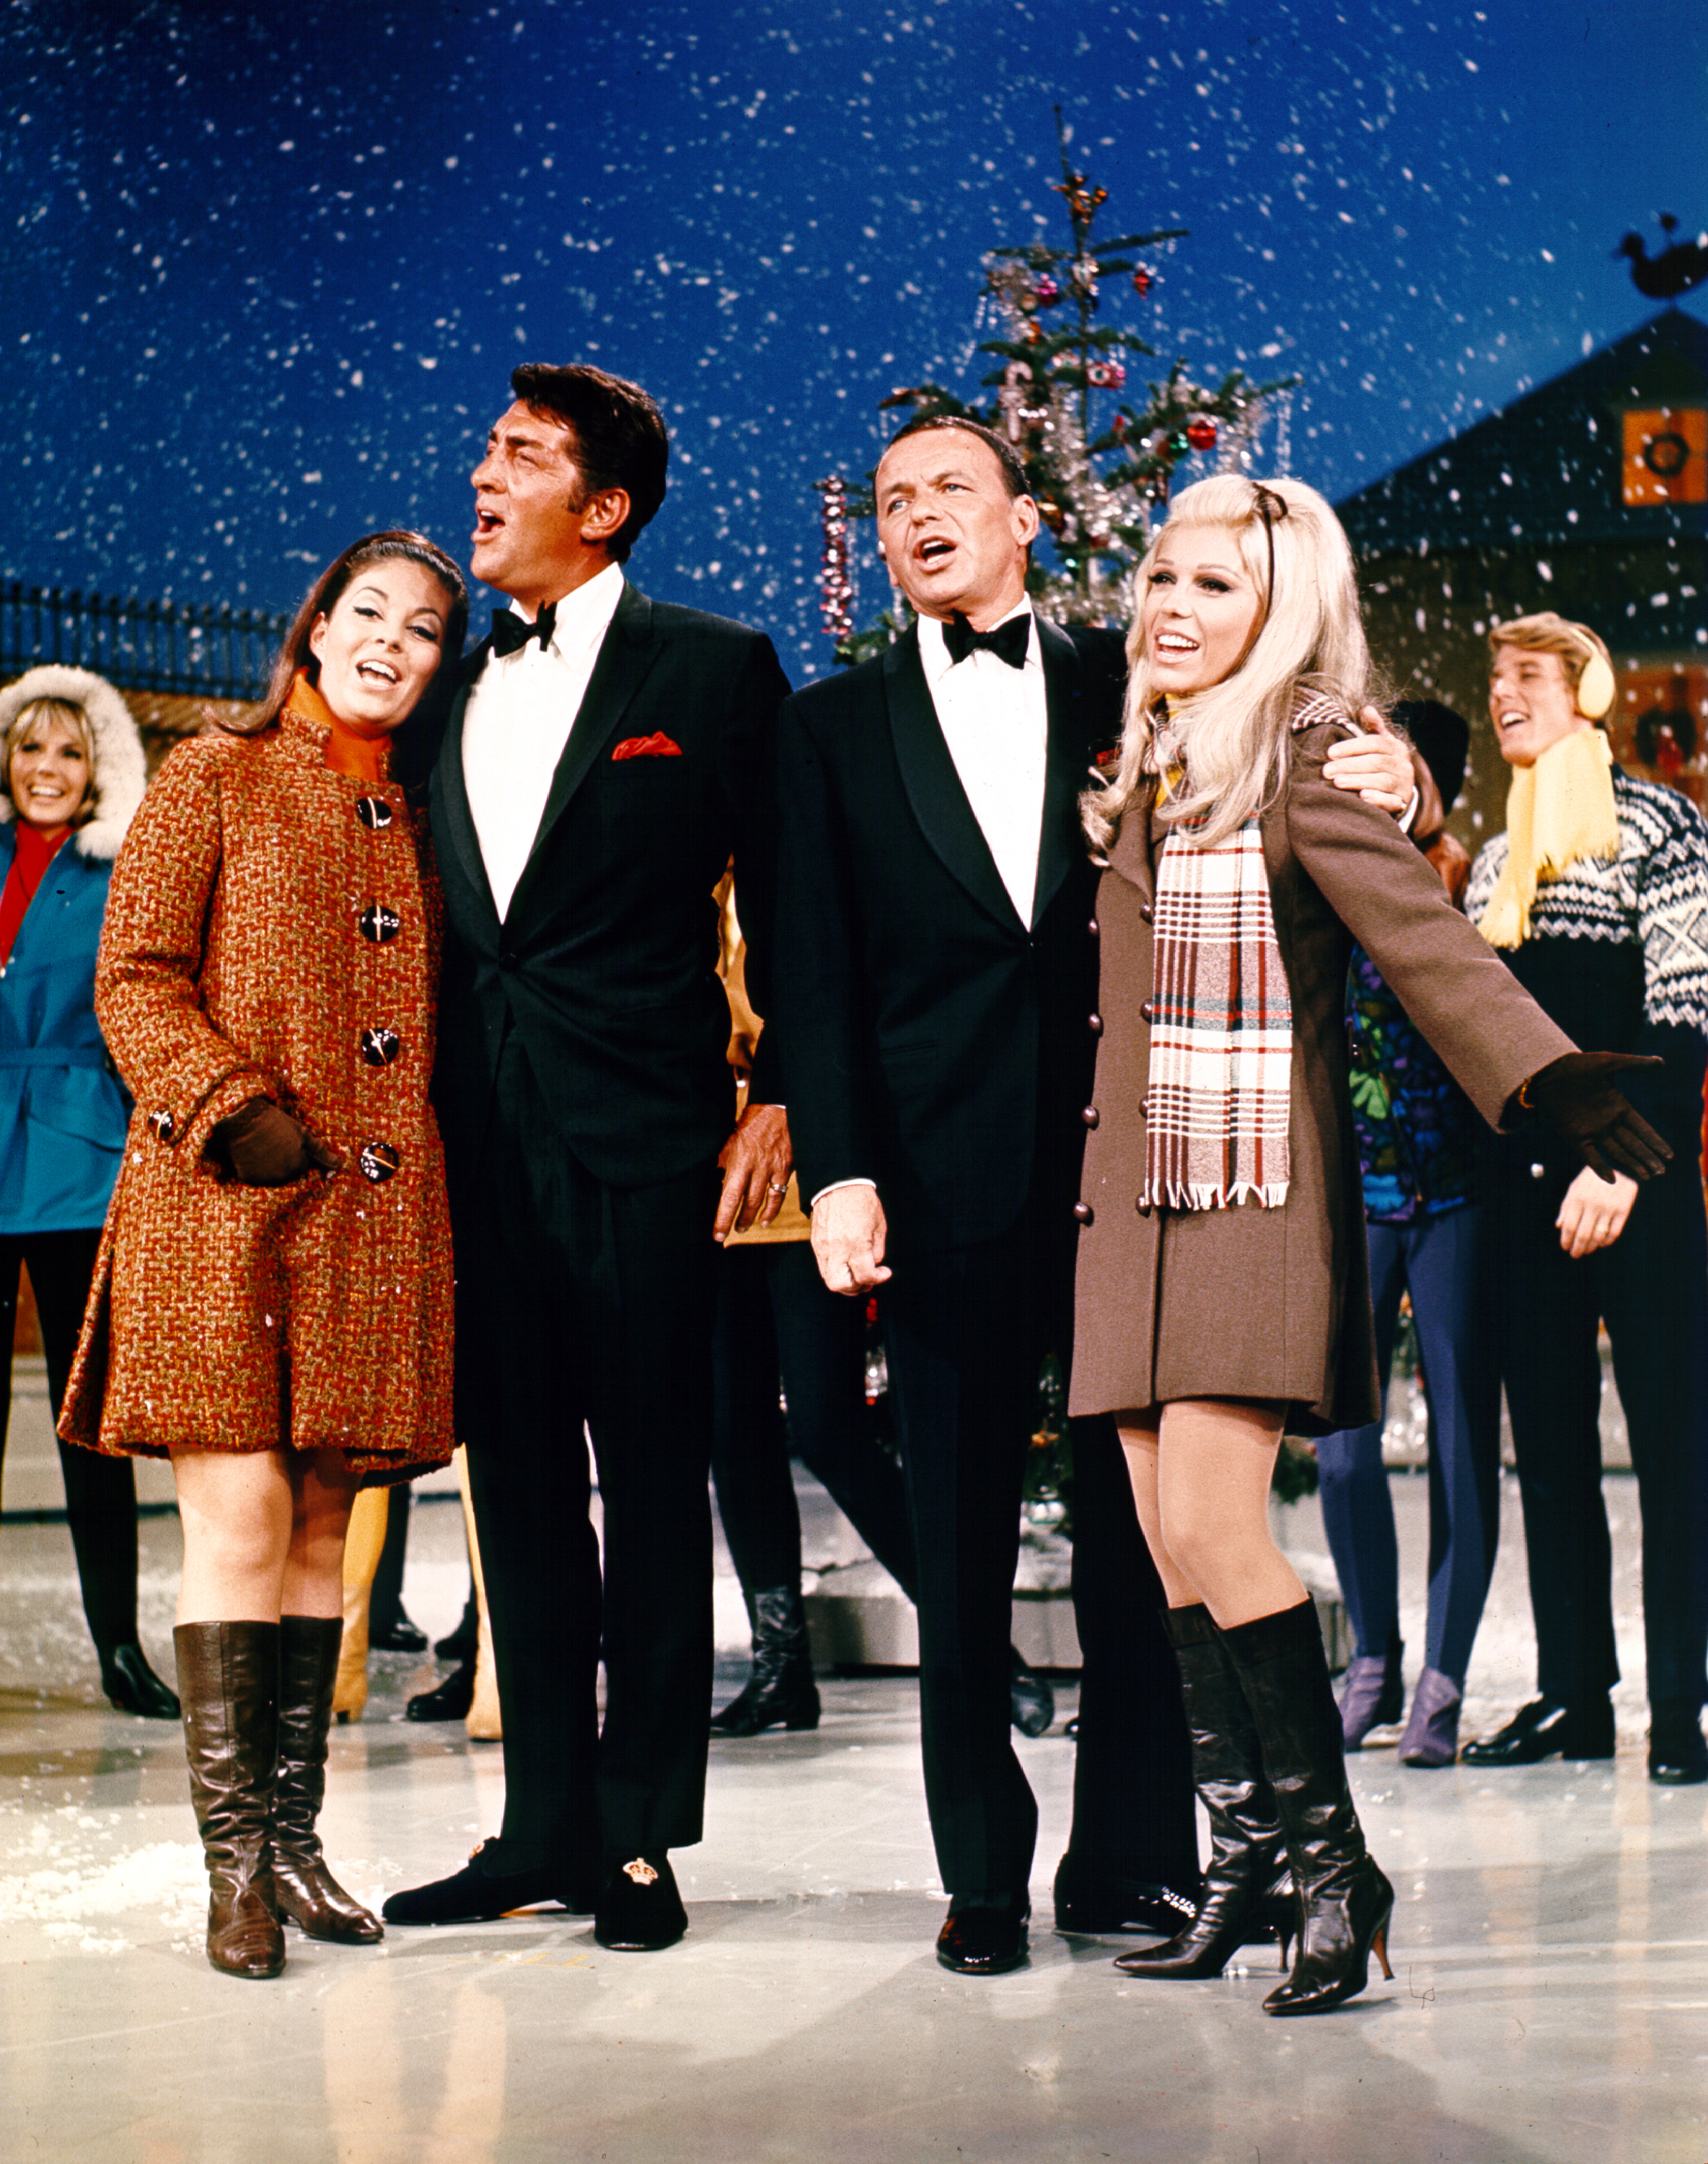 Caption: Entertainers Deana Martin, Dean Martin, Frank Sinatra and Nancy Sinatra perform on a Christmas special TV show in December 1967., Credit: Michael Ochs Archives/Stinger/Getty